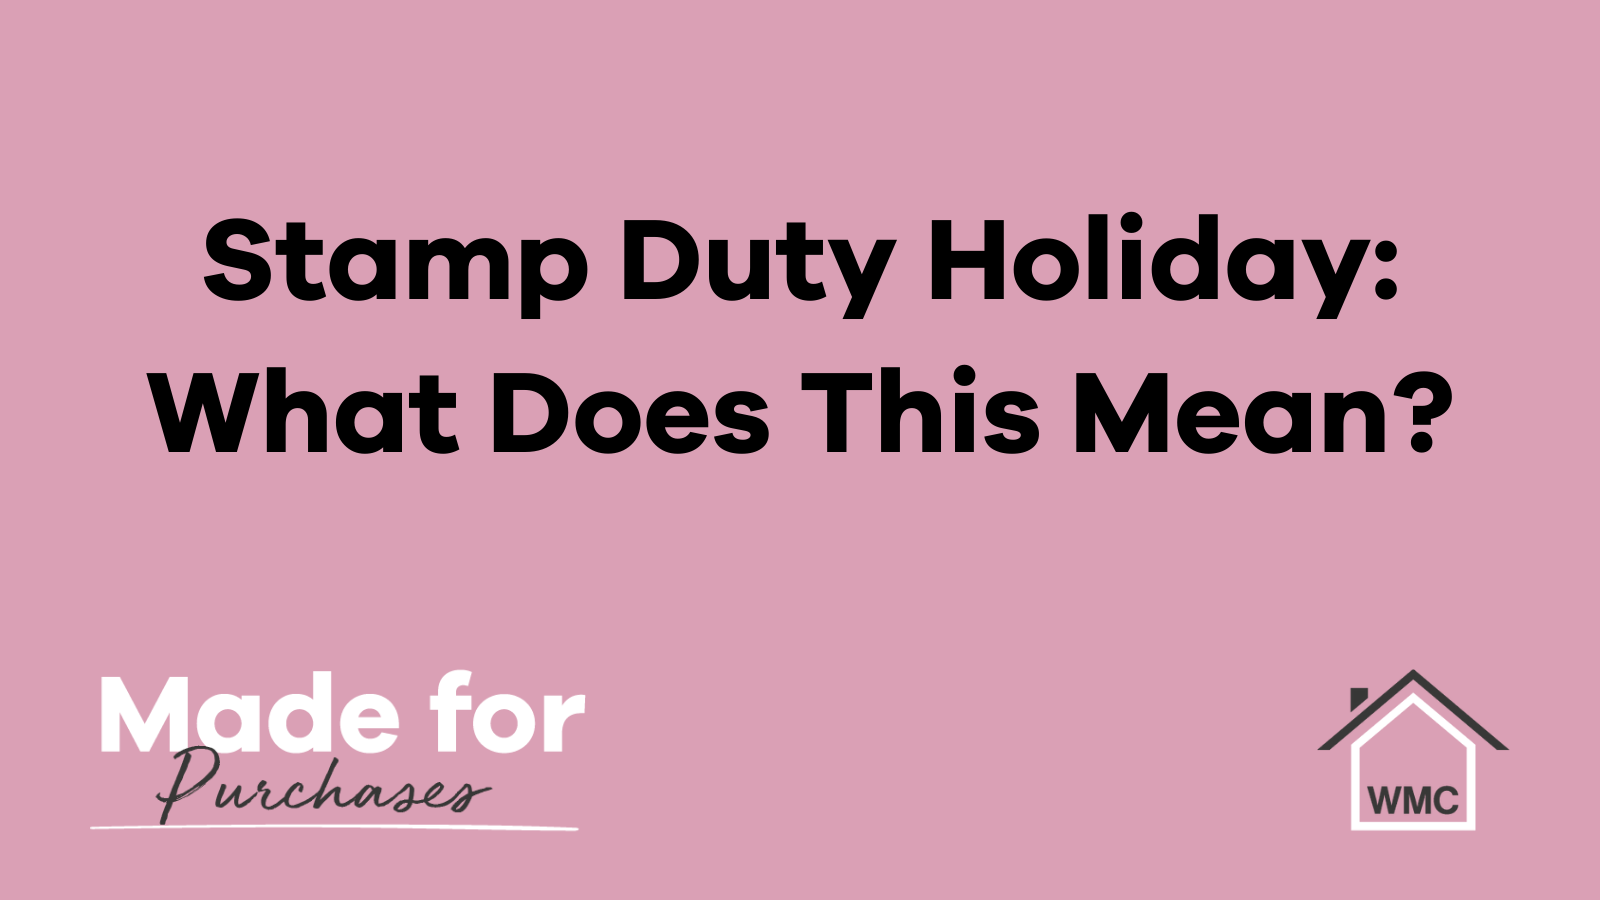 Stamp Duty Holiday: What Does This Mean?